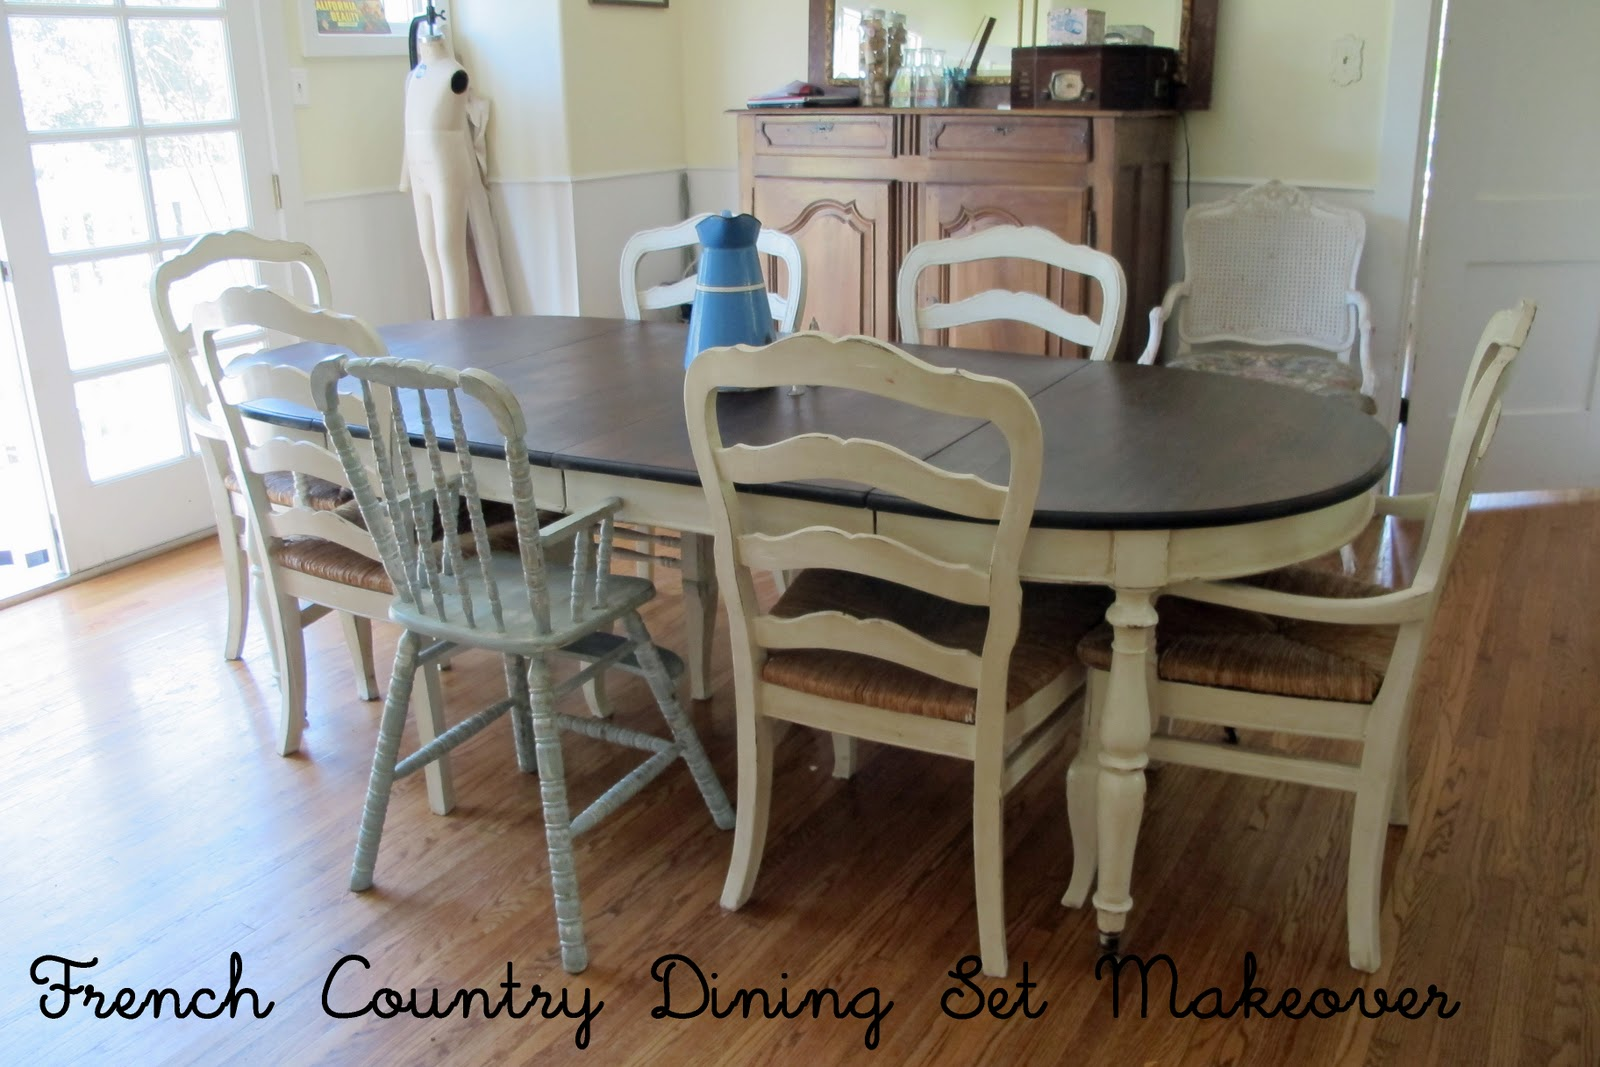 Country dining room table and chairs - French Country Glazed Creamy Painted Dining Set Mini Tutorial